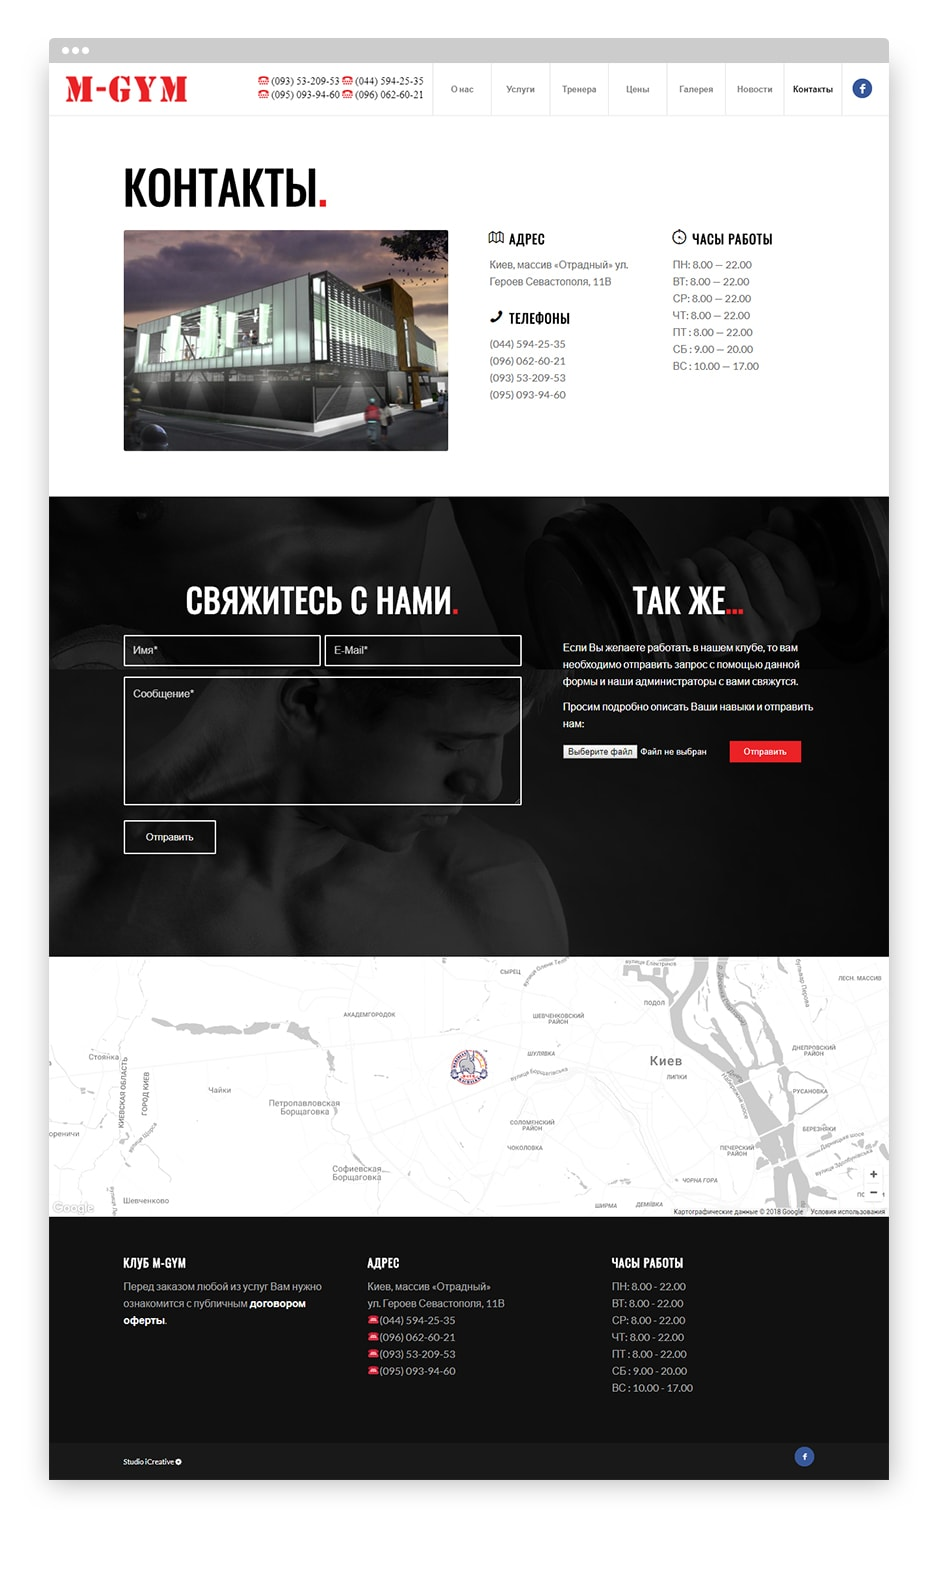 icreative.com.ua_m_gym_4